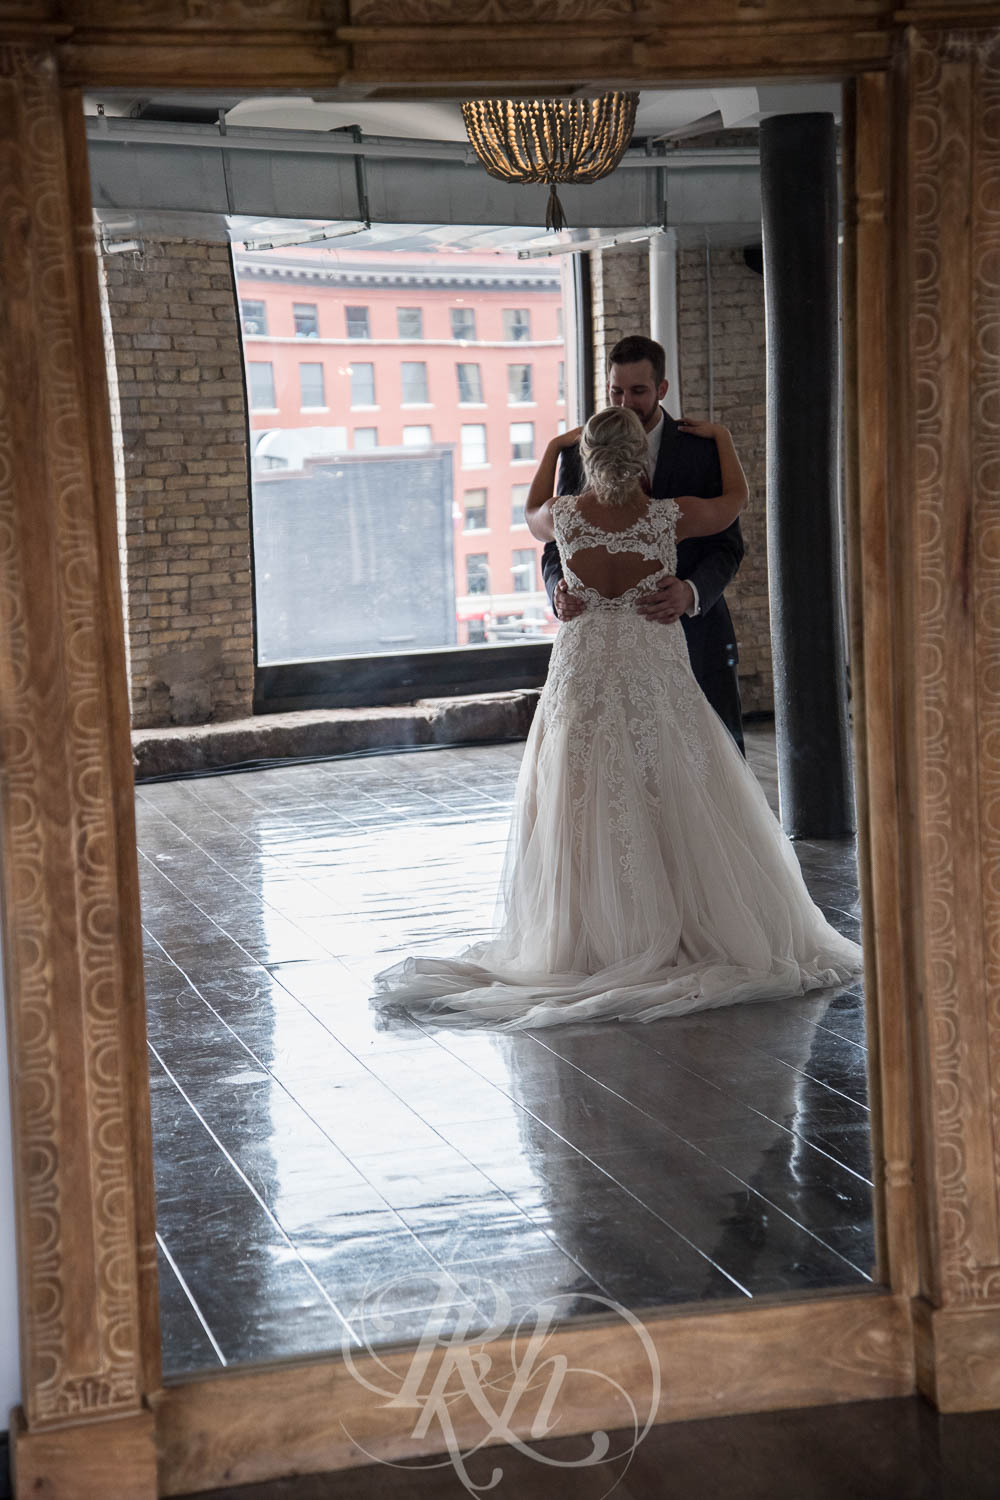 Katie & Jeff - Minnesota Wedding Photography - Lumber Exchange Building - RKH Images - Blog  (22 of 49).jpg